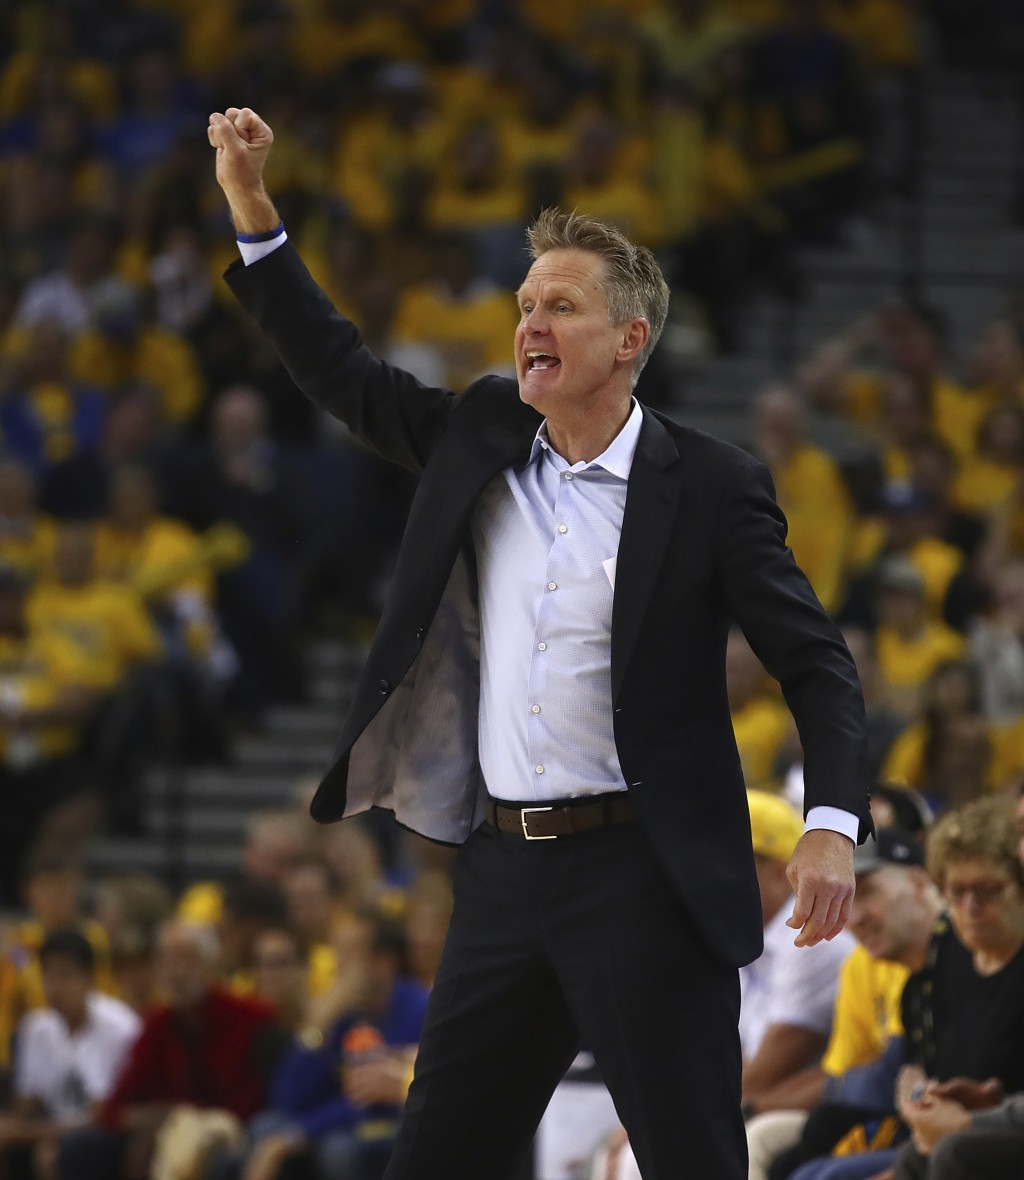 Golden State Warriors coach Steve Kerr gestures during the first half in Game 1 of a first-round NBA basketball playoff series against the San Antonio